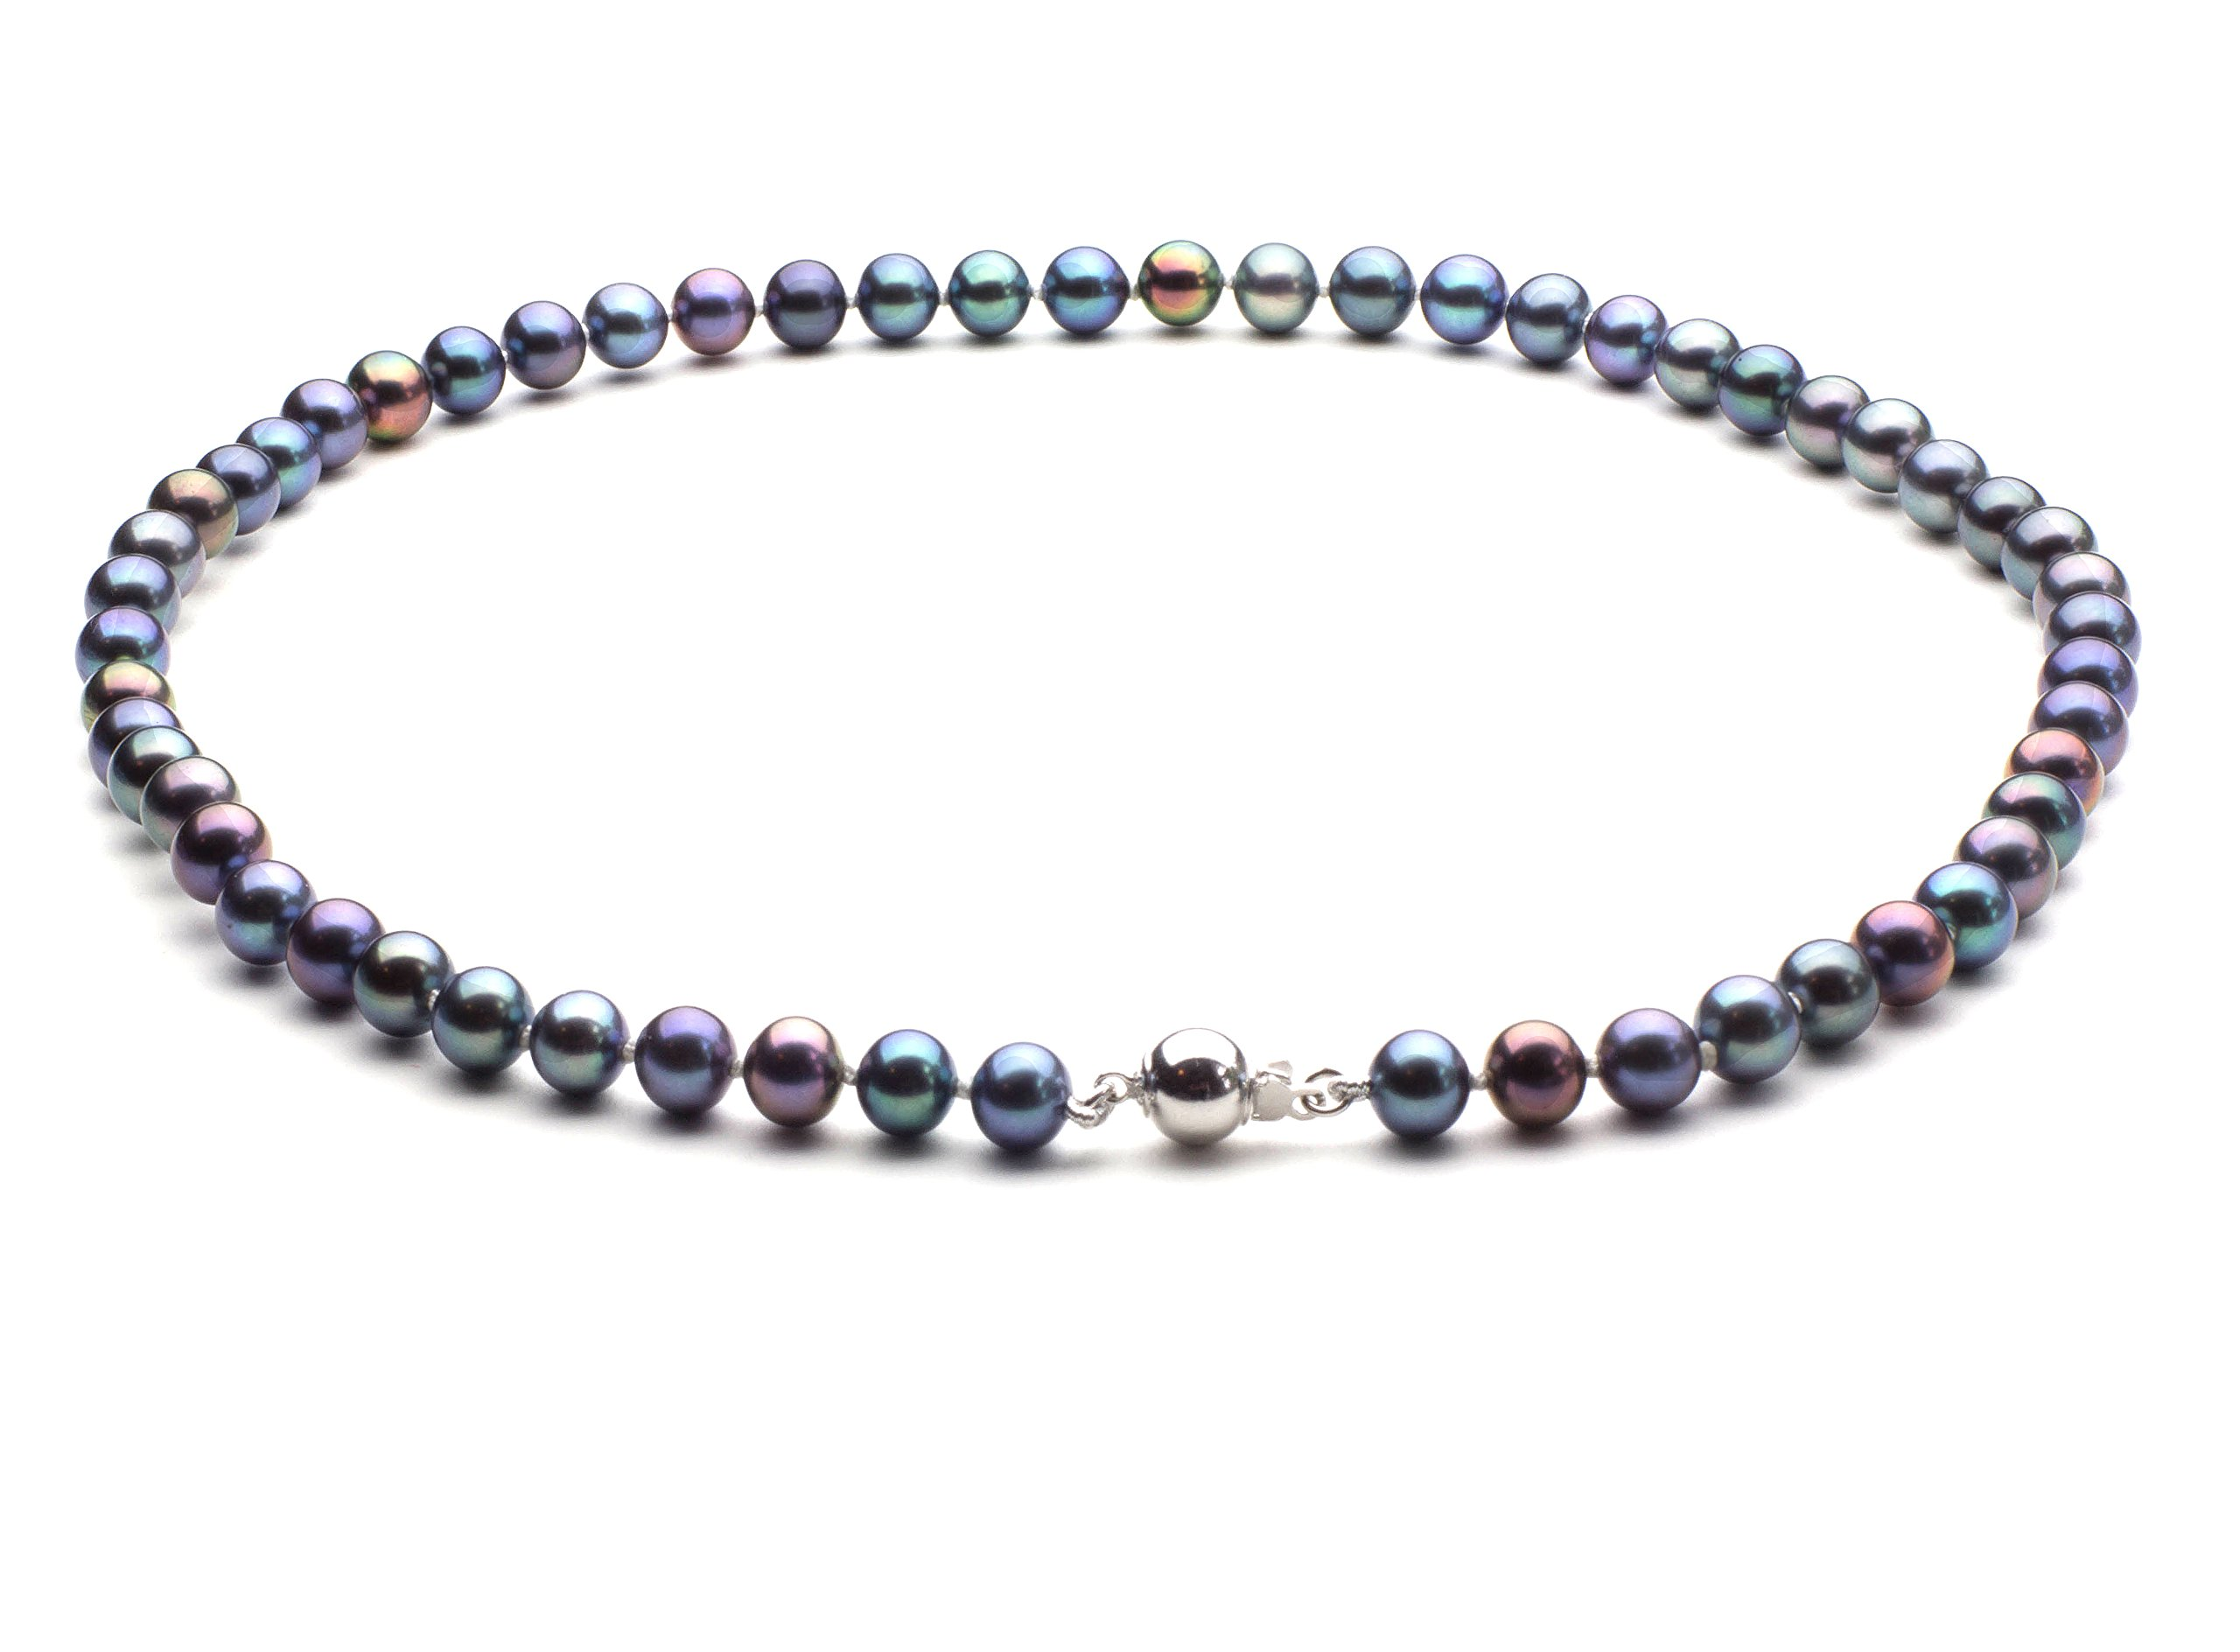 HinsonGayle AAA Handpicked 6.5-7mm Multicolor Black Round Freshwater Cultured Pearl Necklace 16 inch-16 in length